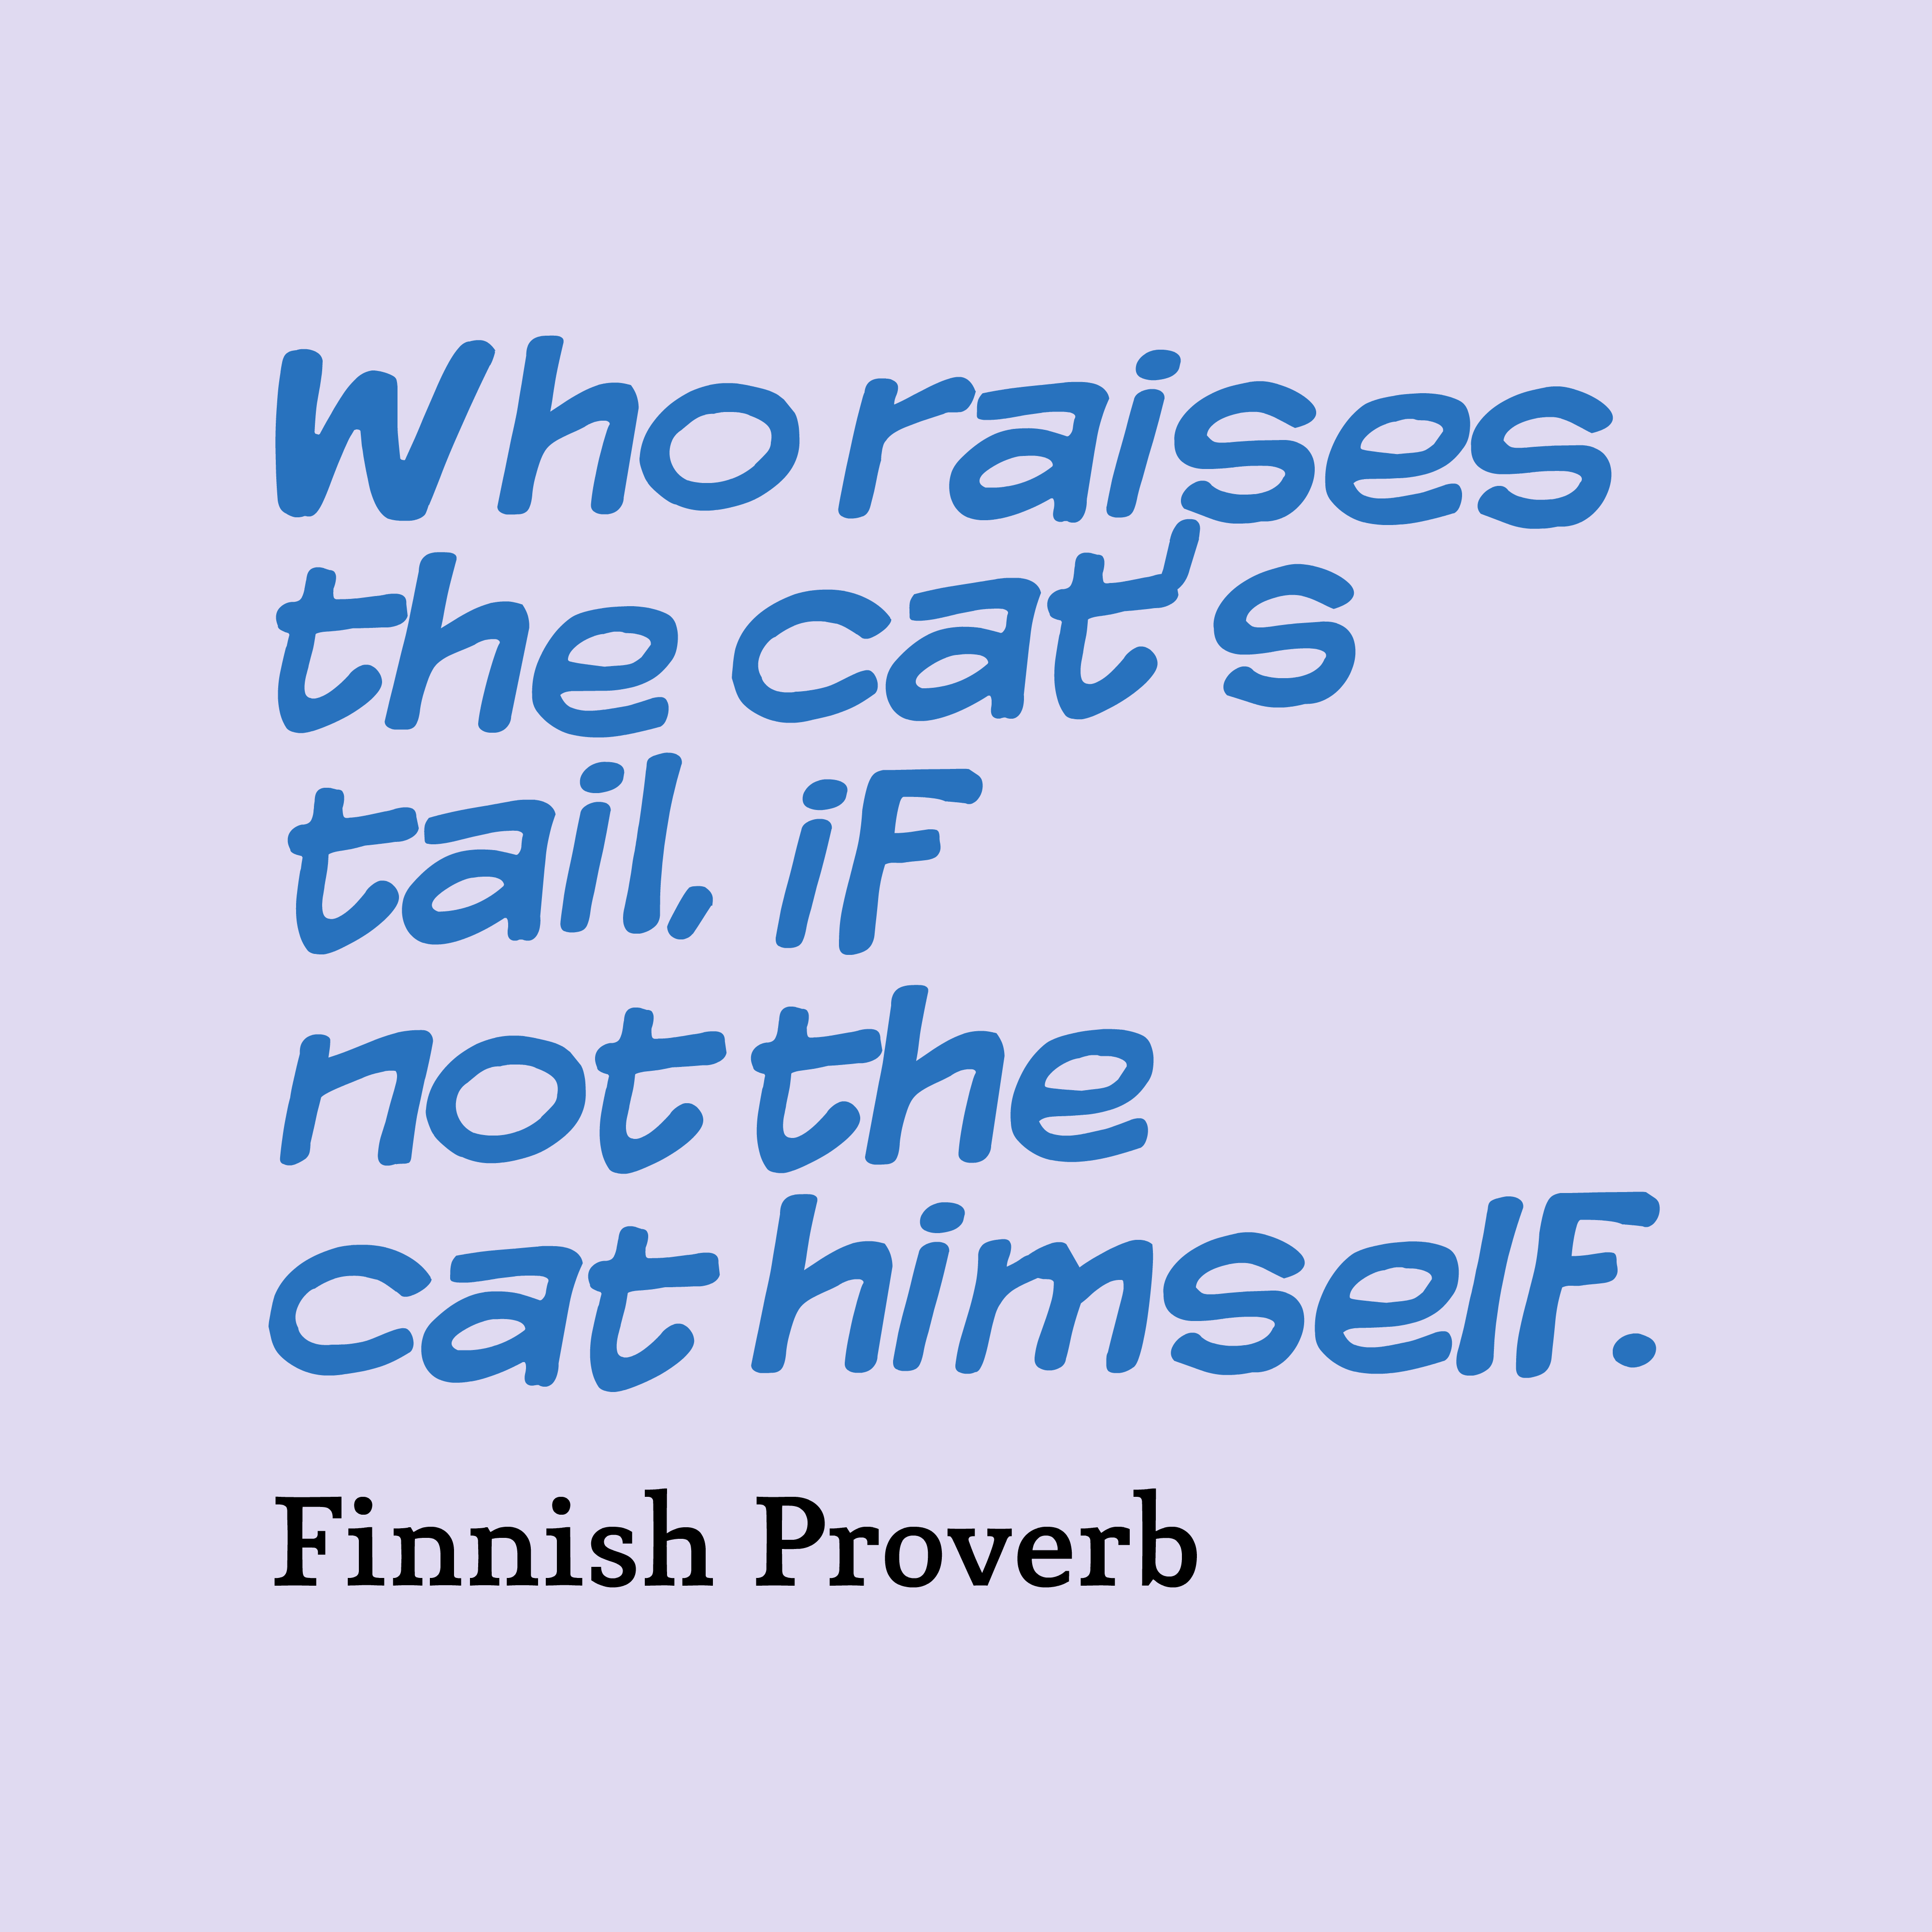 Quotes image of Who raises the cat's tail, if not the cat himself.